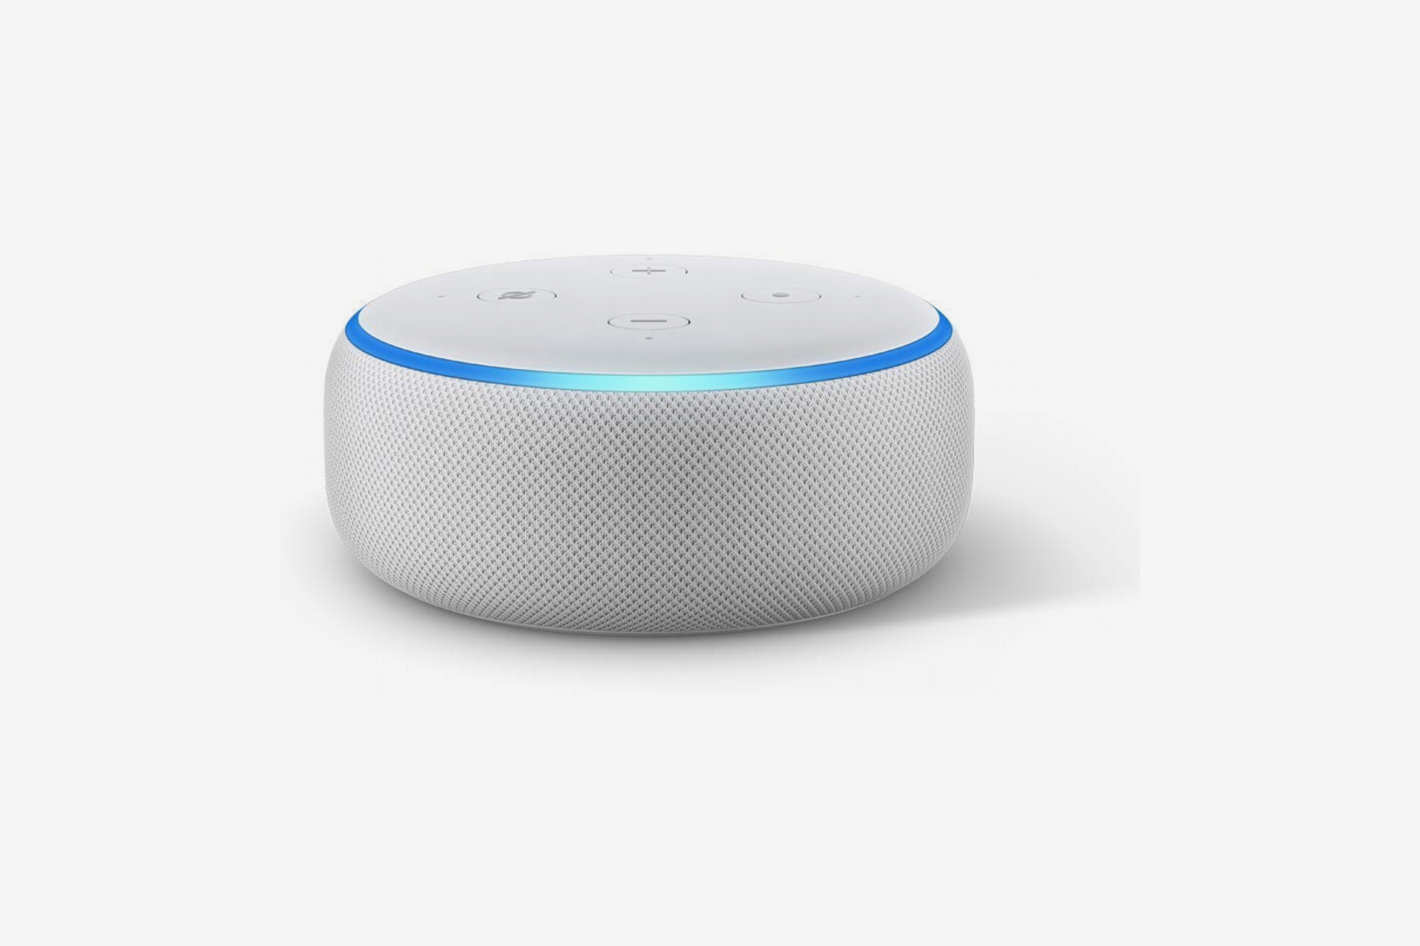 Amazon Echo Dot (3rd Generation)